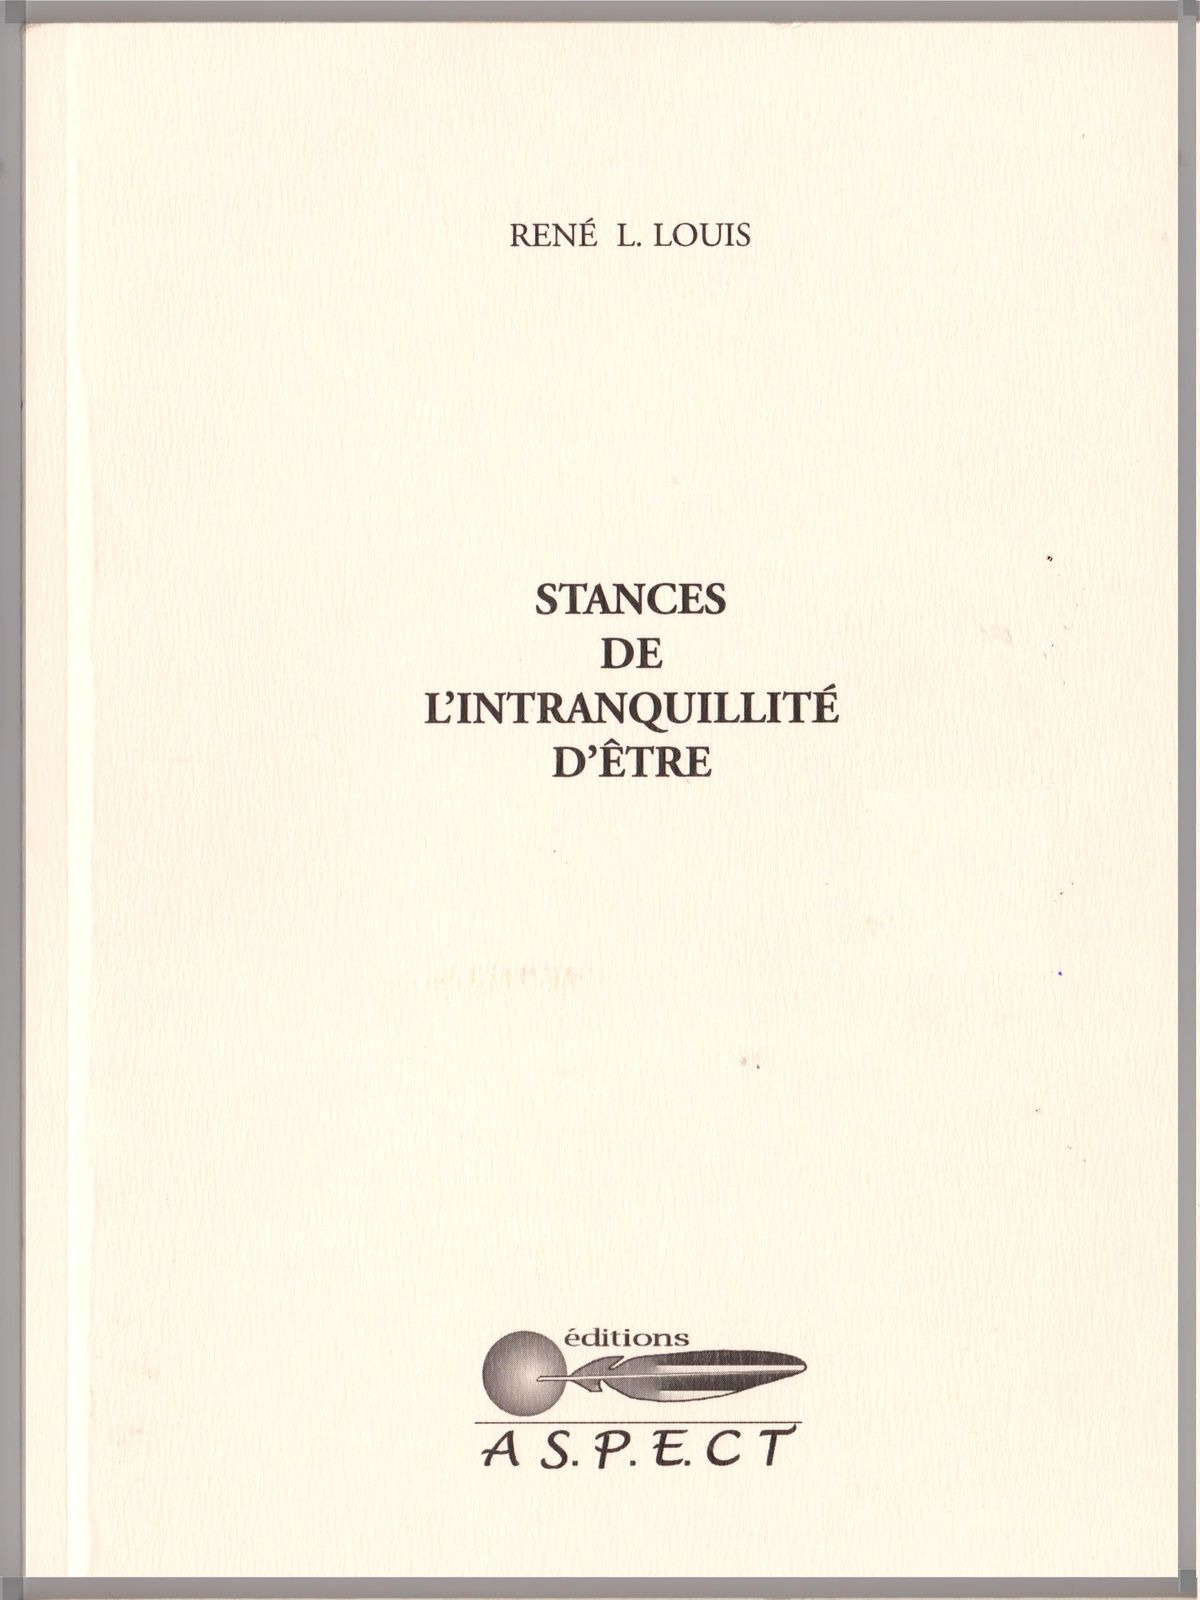 Stances à l'intranquillité d'être   de René L. Louis - collection Folium - dos carré-collé - format 15 x 20 cm - 62 pages - ISBN : 9782952154406 - prix : 12, 00 euros